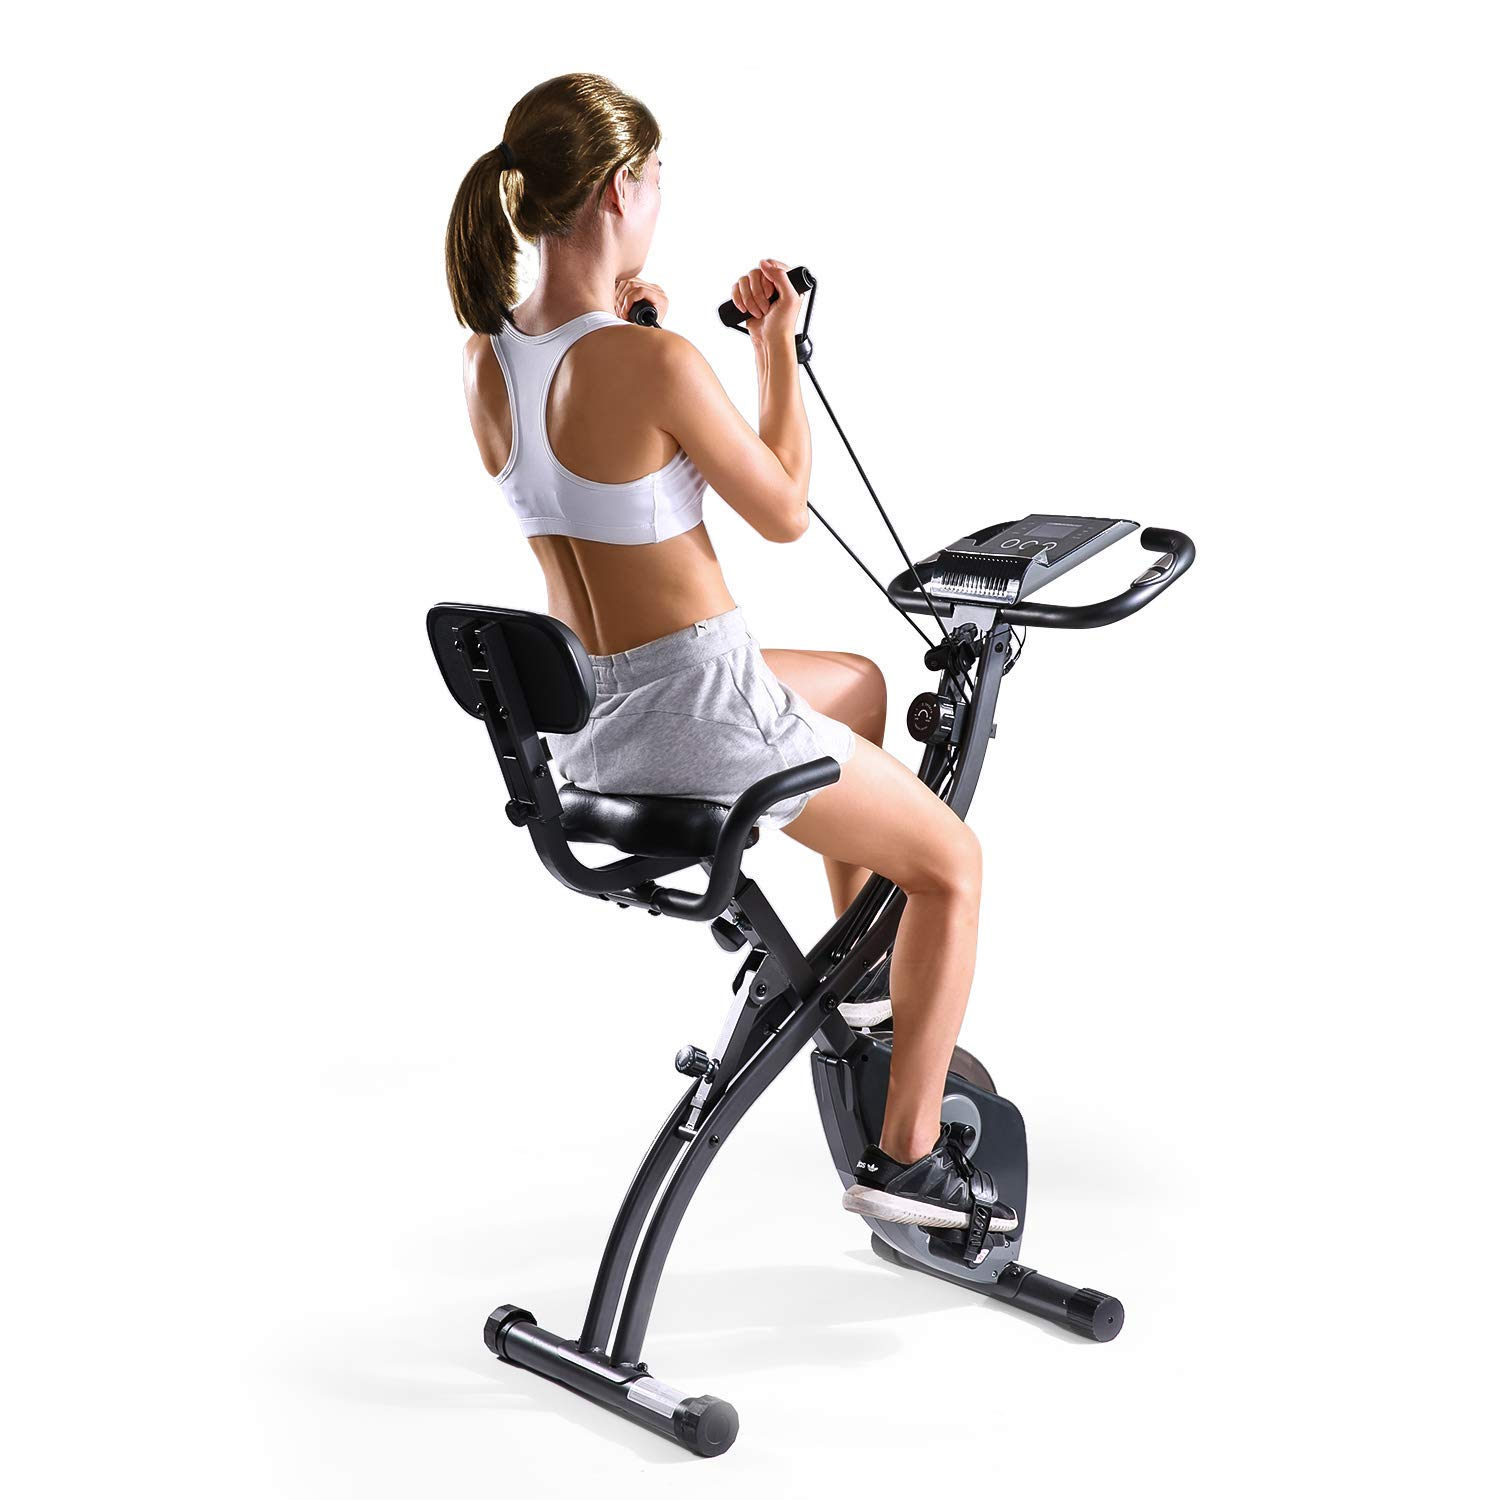 MaxKare Folding Magnetic Upright Exercise Bike w/Pulse Sensor/LCD Monitor Indoor Cycling Bike Stationary Bike Recumbent Exercise Bike with Arm Resistance Bands, Perfect for Home Use by MaxKare